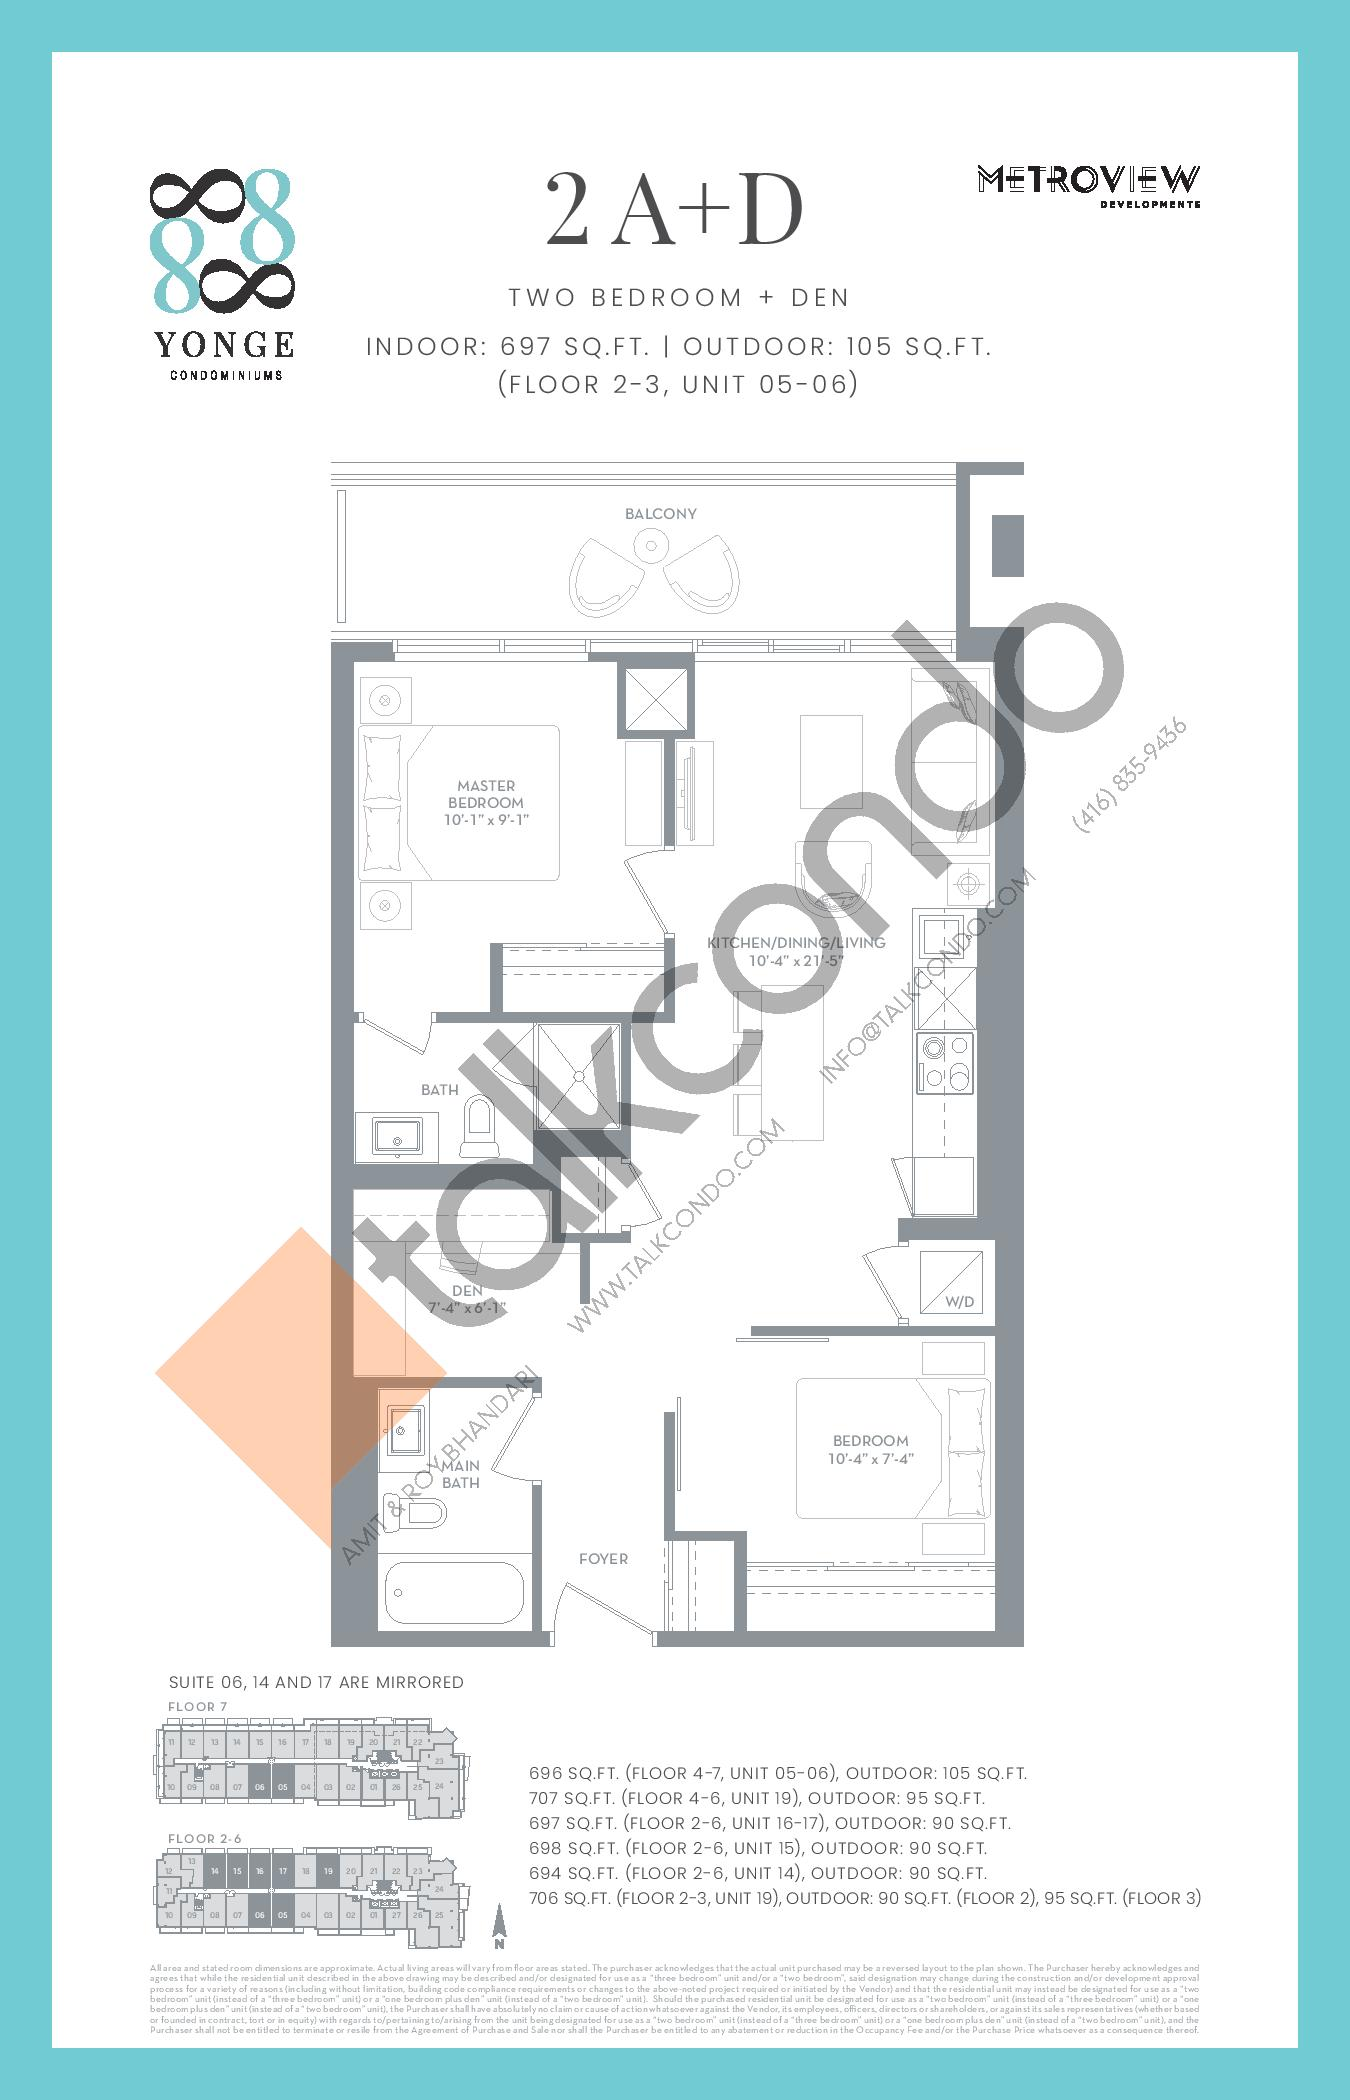 2A+D Floor Plan at 8888 Yonge Street Condos - 697 sq.ft